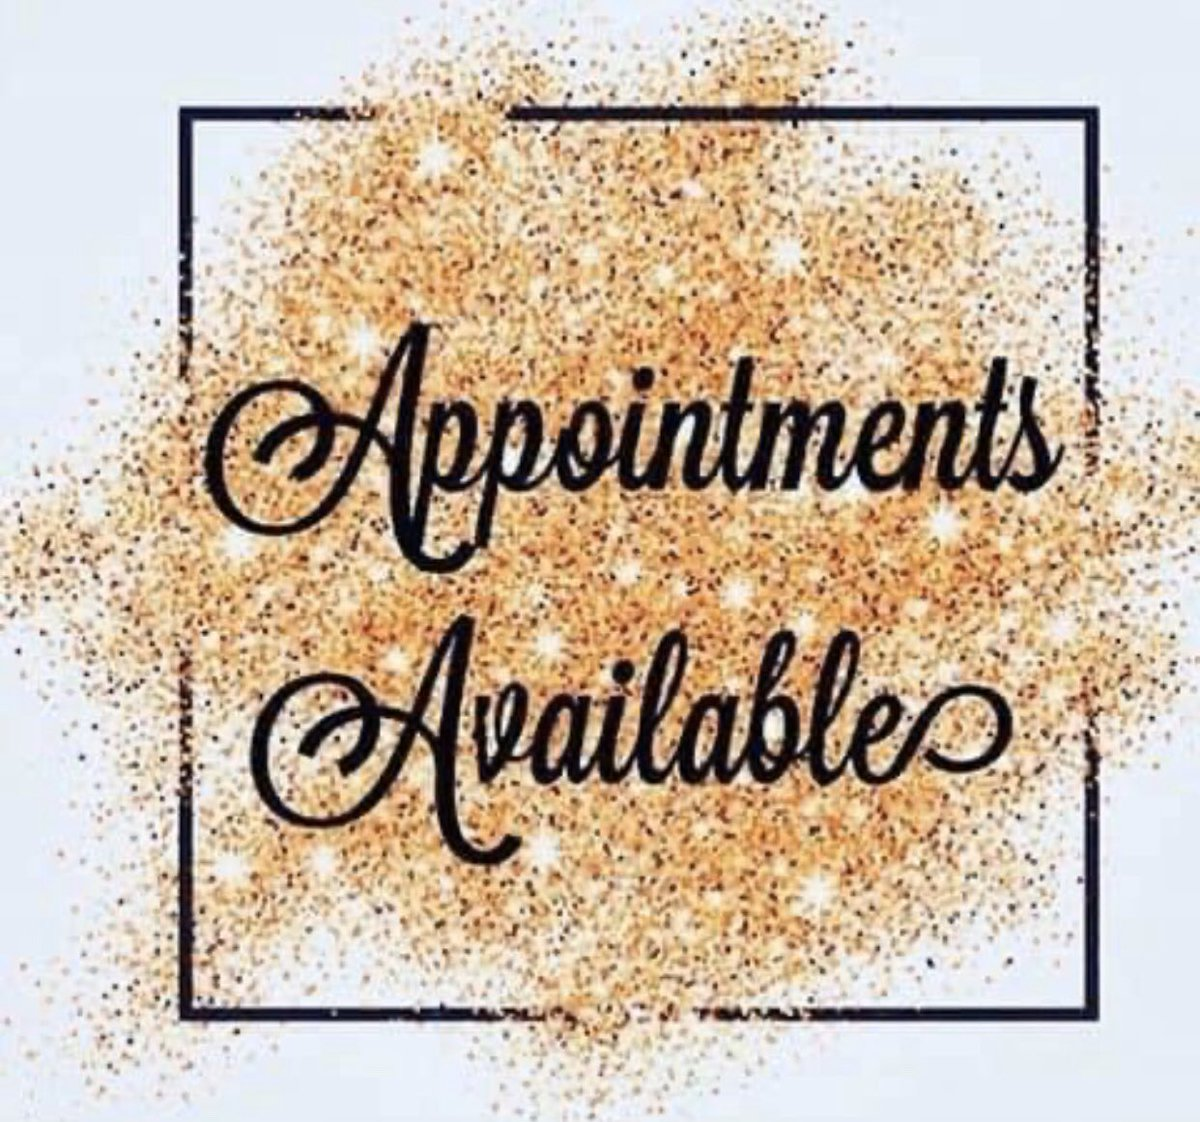 Only a couple appointments left this week and next! Get in for #Hair #Nails or #Lashes while they are free!  406-272-0070 BOOK Herehttps://go.booker.com/Studio406salon #Salon #Beauty #406Hair #BillingsHair #Billings #Montana #MT #Nailsalon #Nailart #Nailpro #Eyelashespic.twitter.com/vCn6uuMkOl